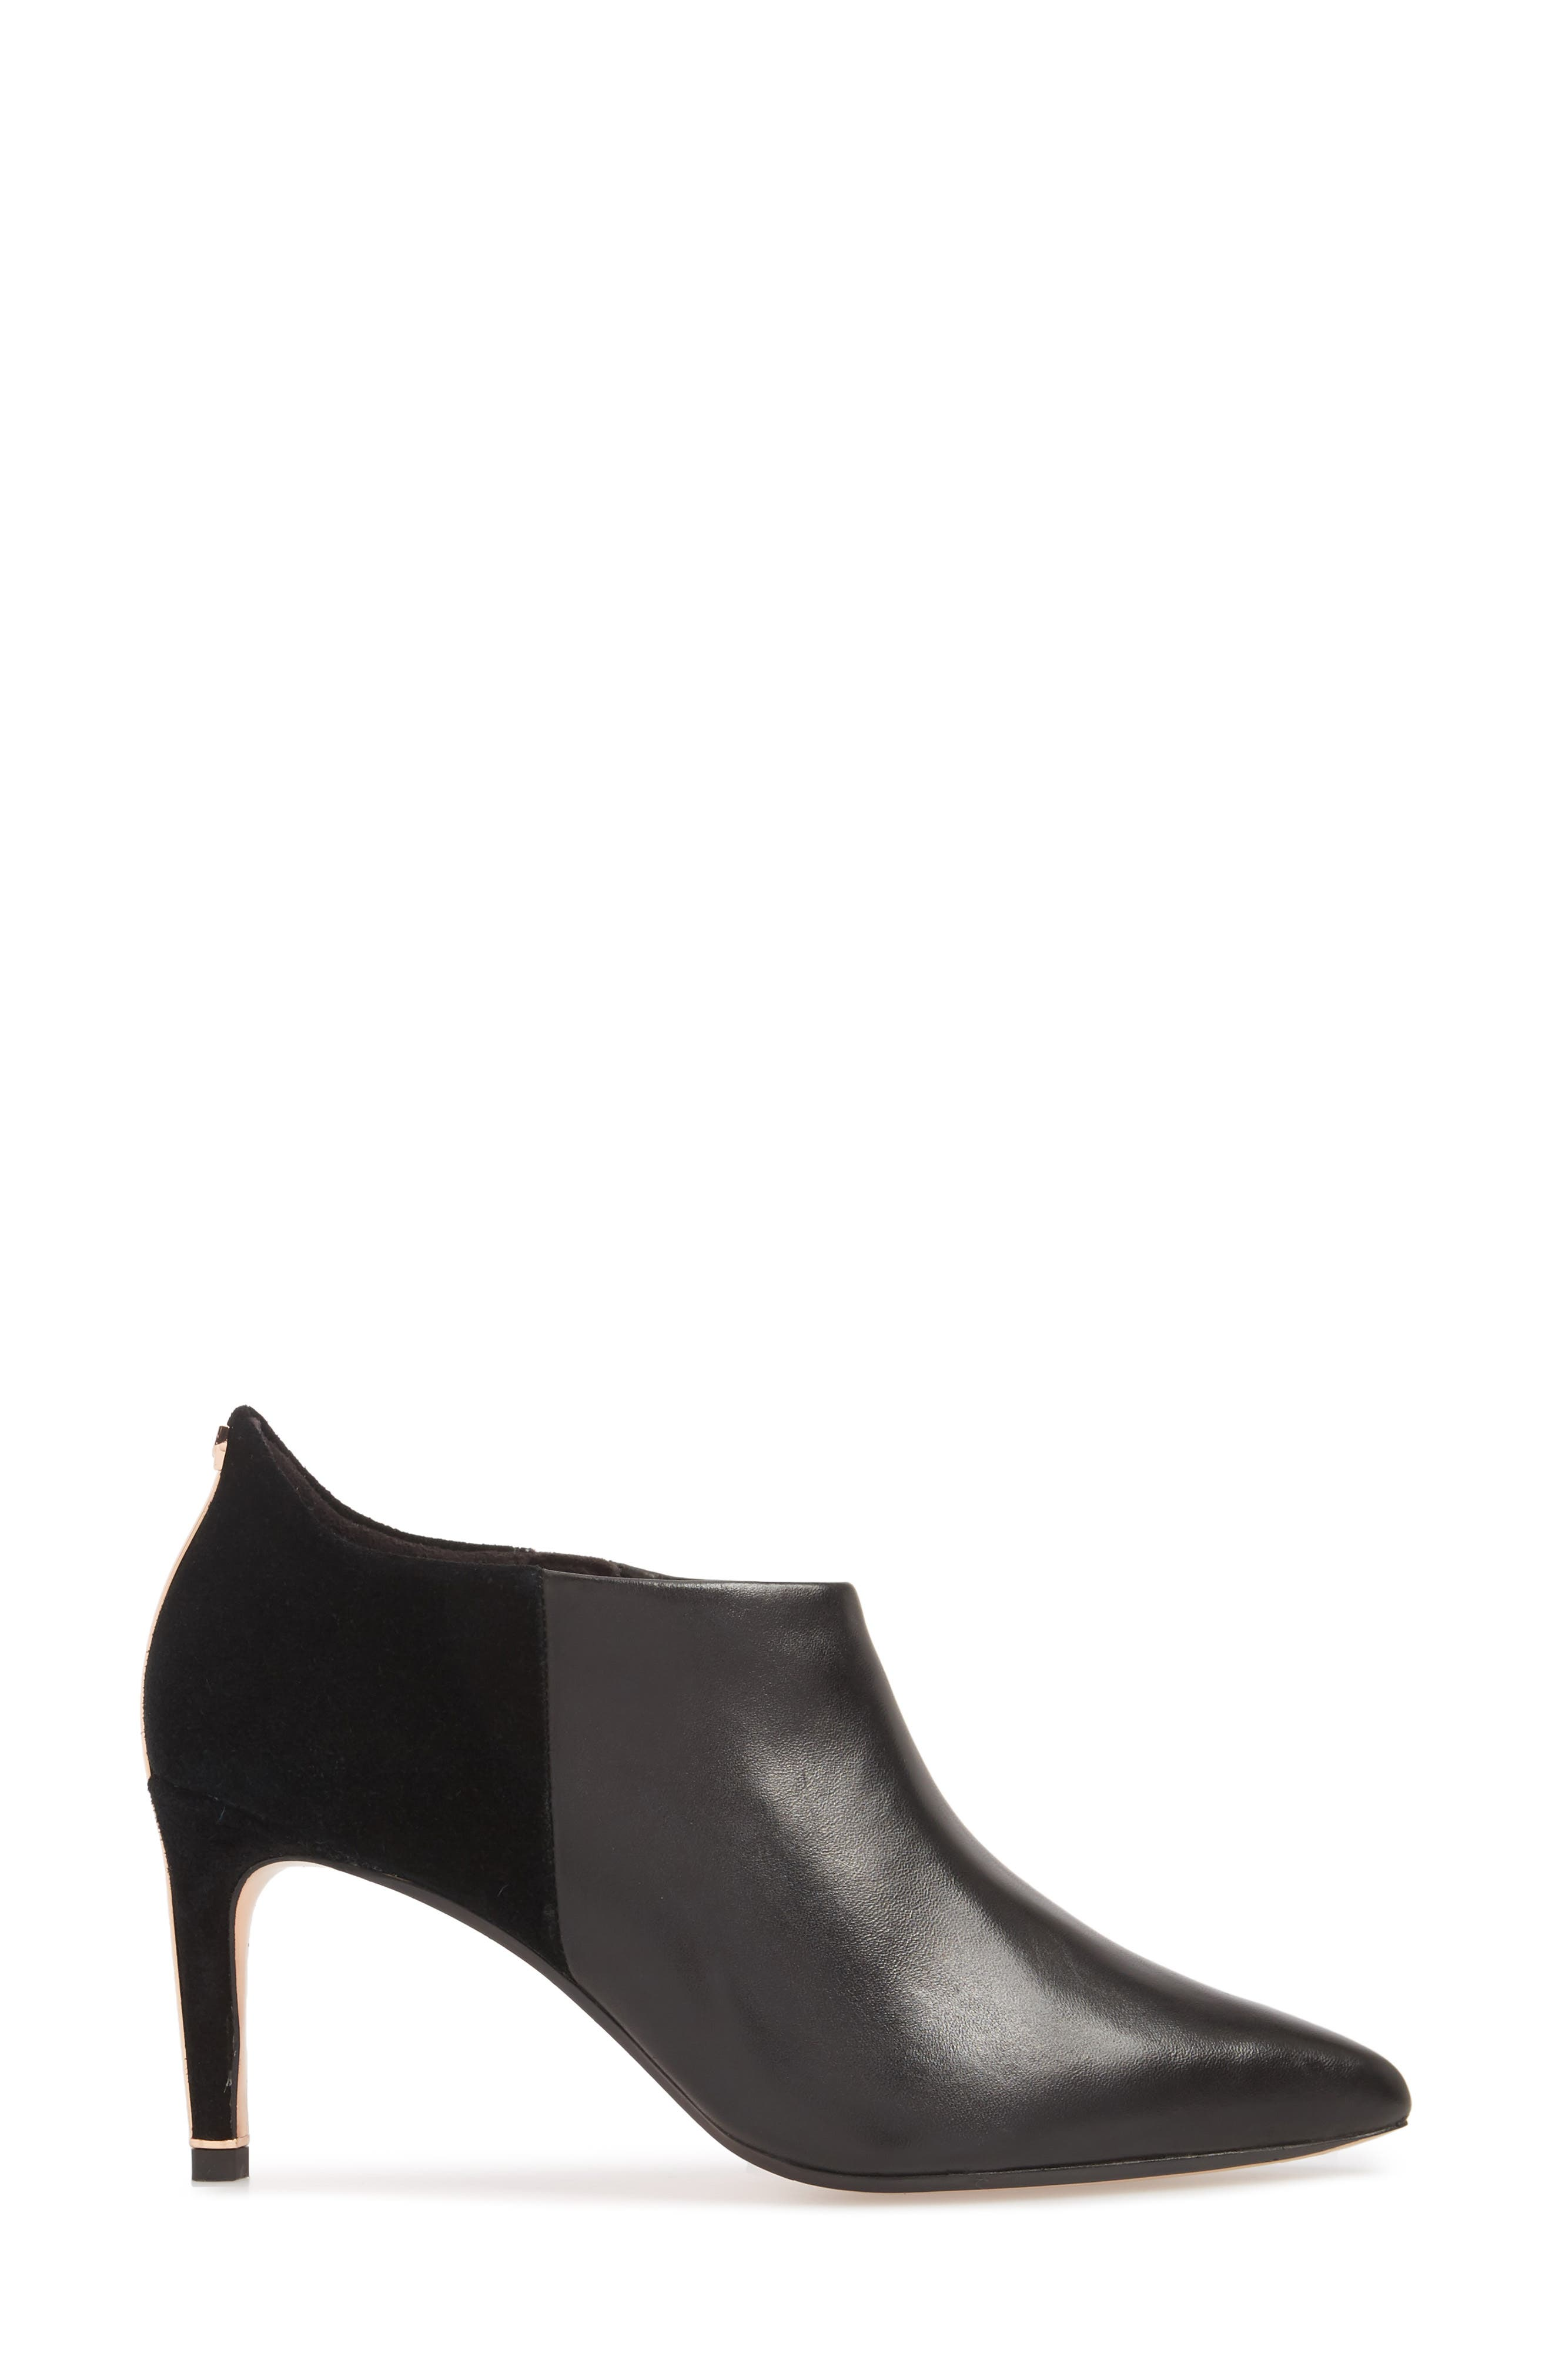 Akasha 2 Bootie,                             Alternate thumbnail 3, color,                             Black Leather